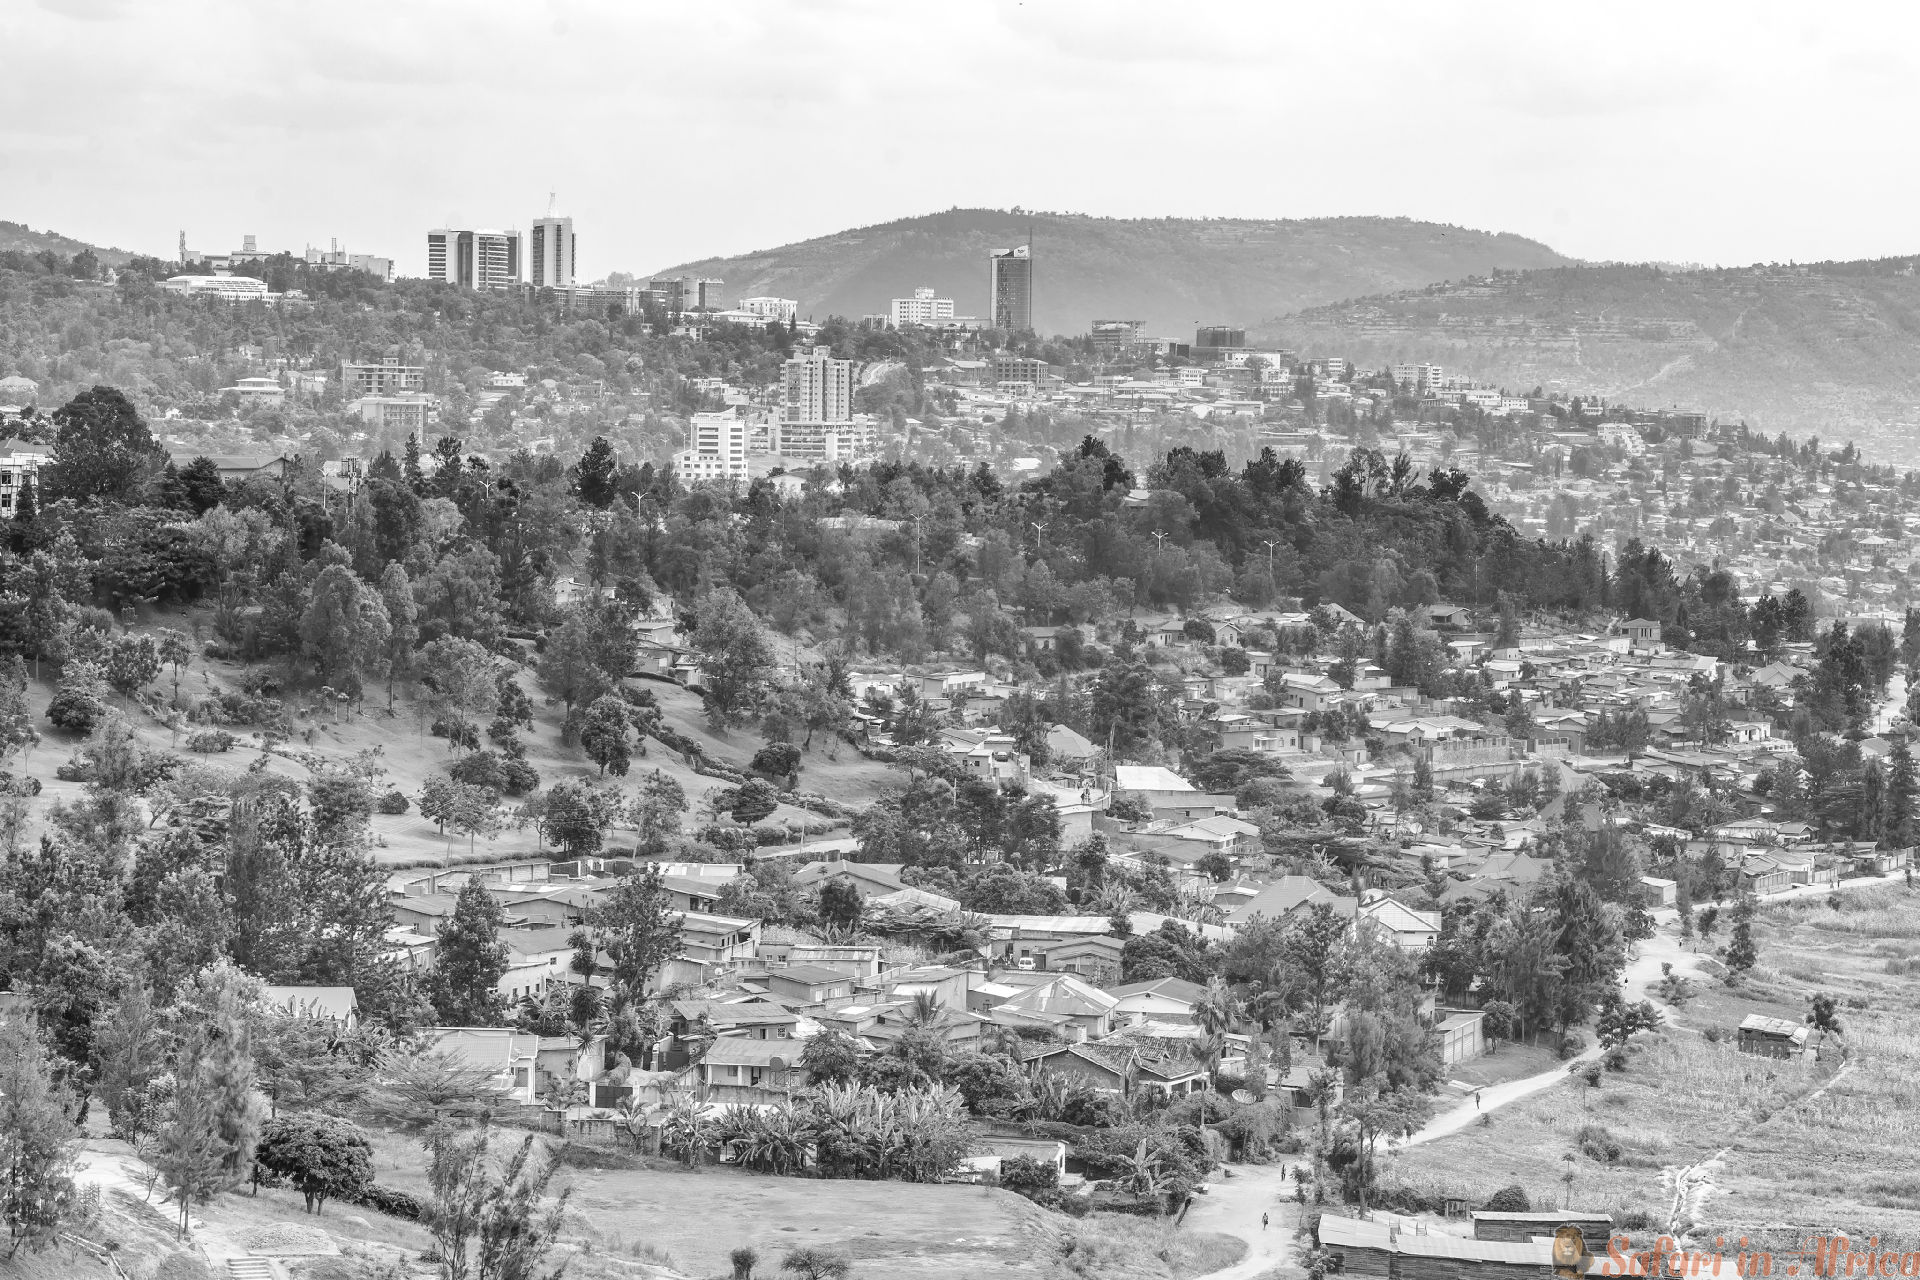 Aerial view of Kigali from a distance B&W